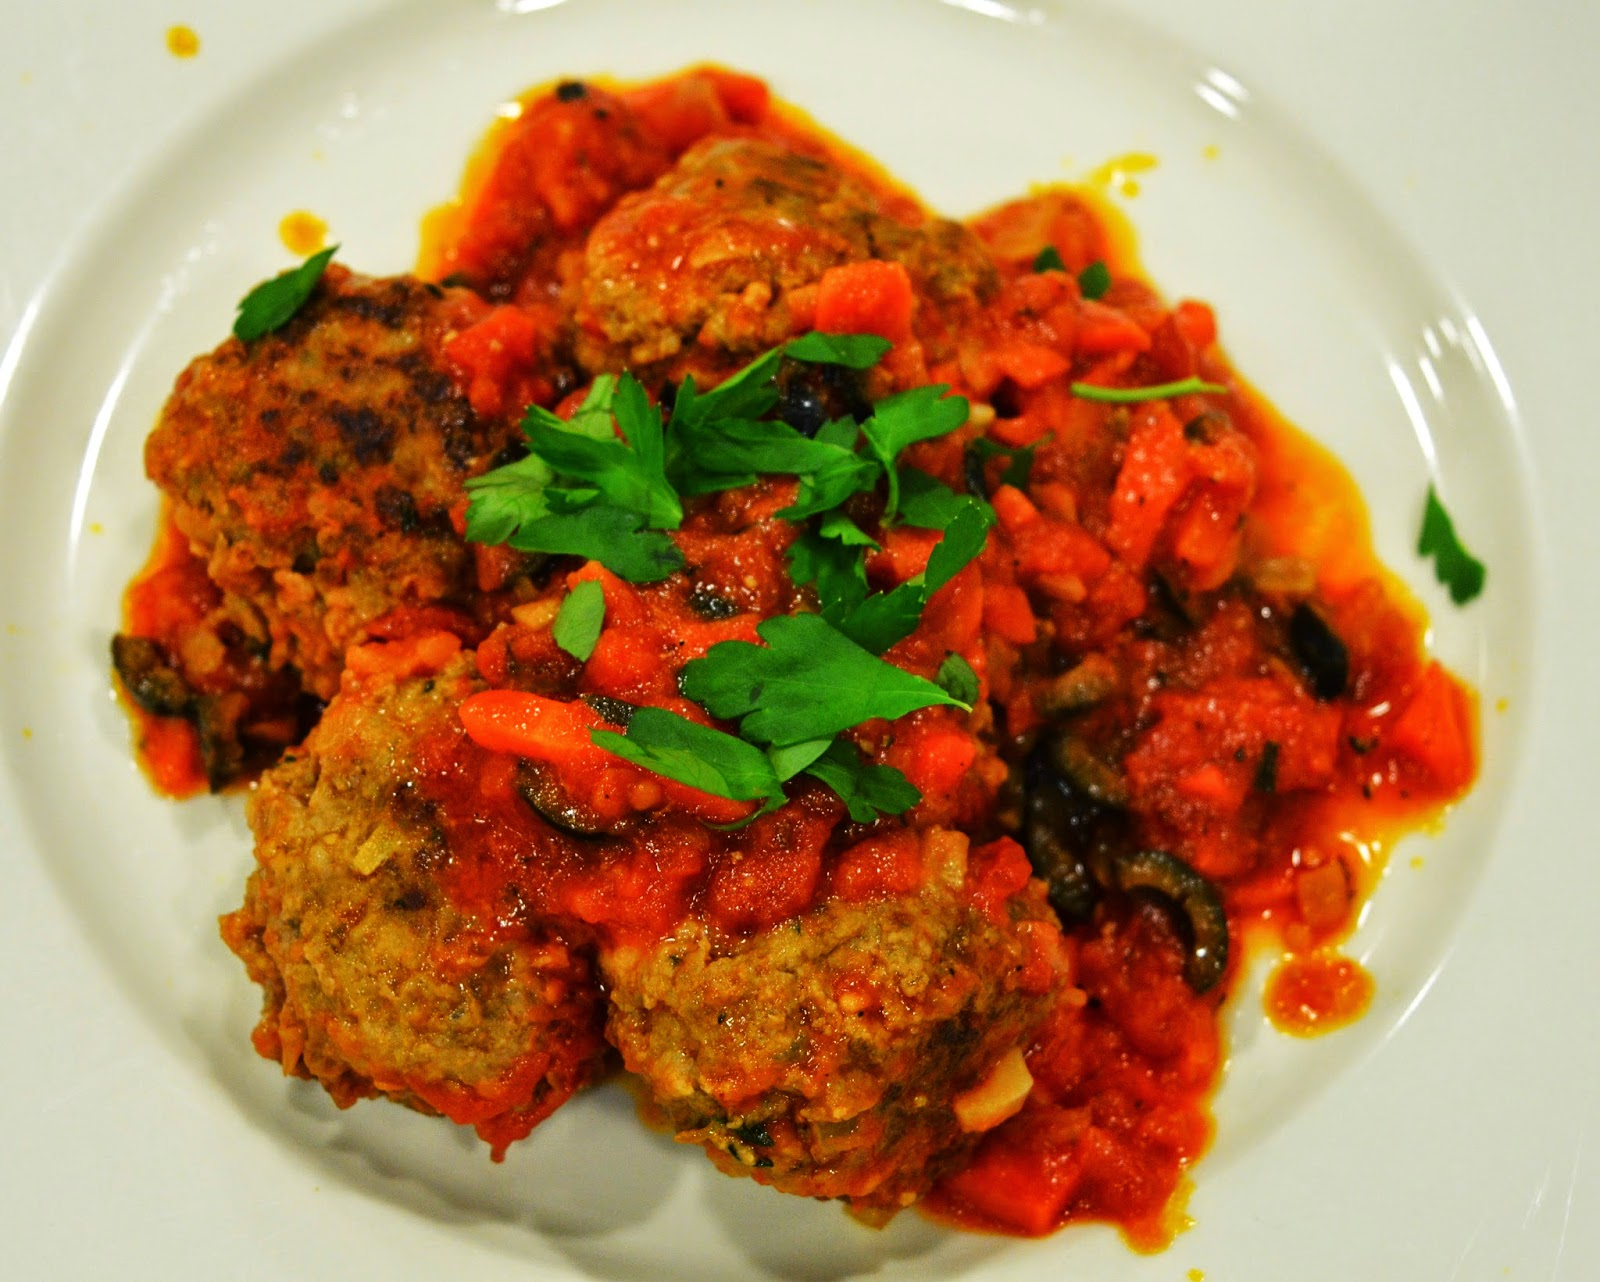 Queen olive-stuffed beef meatballs with tomato and olive sauce